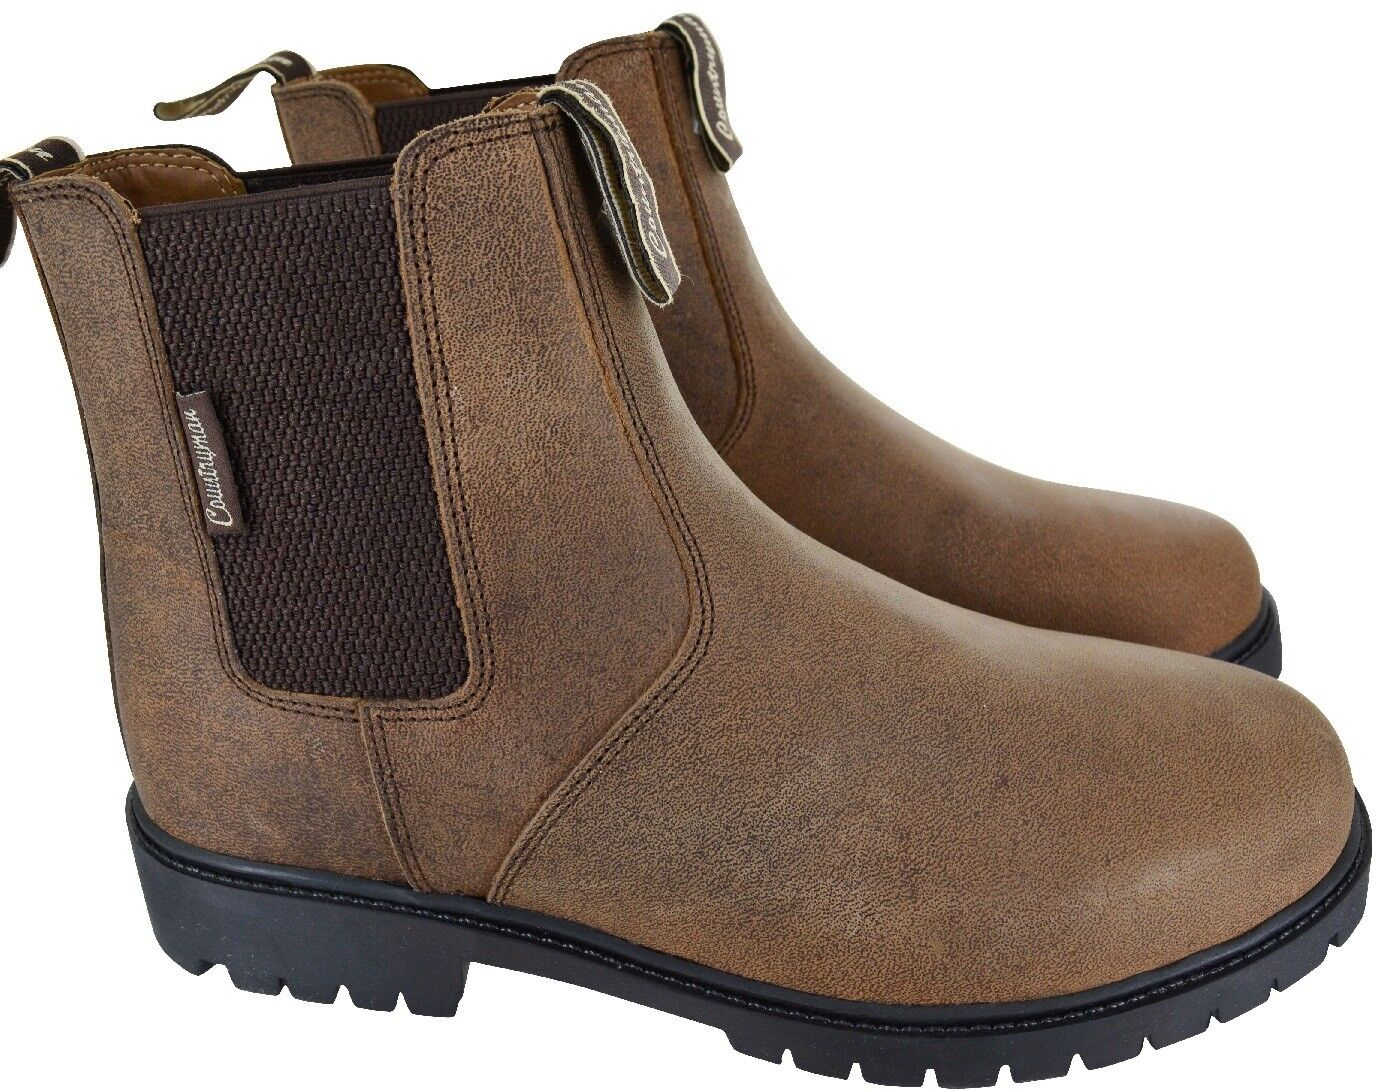 MENS LEATHER WAXY BROWN CHELSEA GUSSET DEALER PULL ON CASUAL BOOTS SHOES SZ 7-11